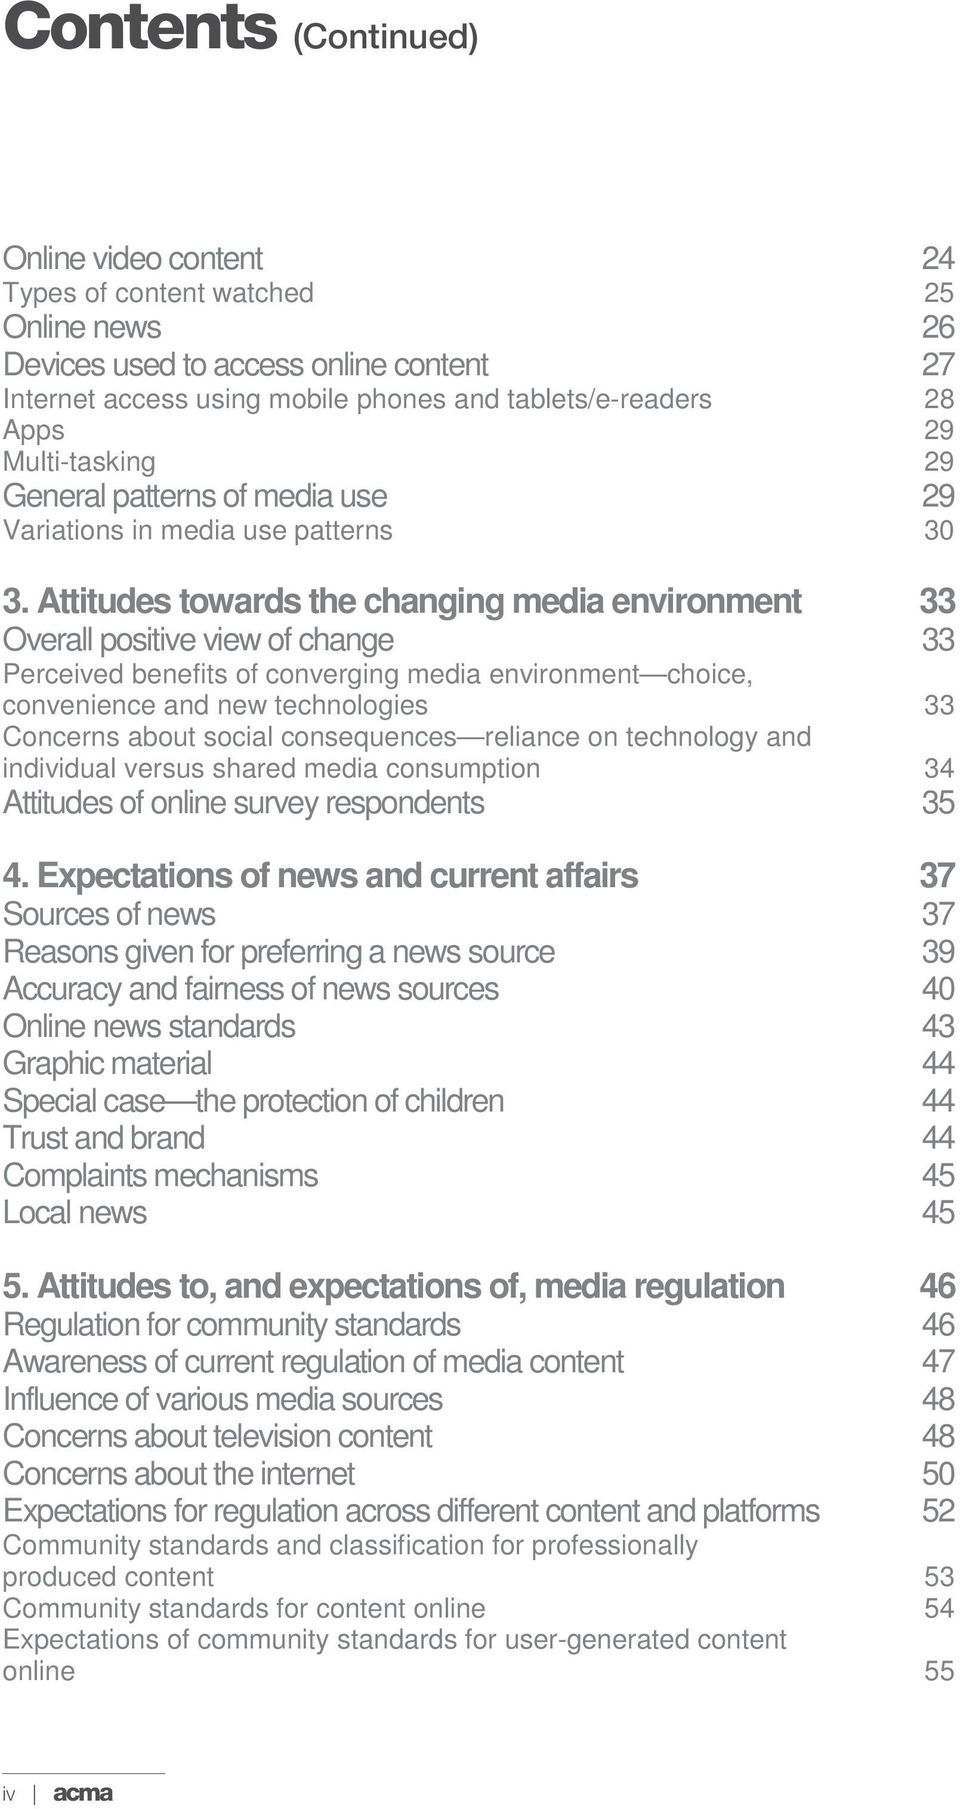 Attitudes towards the changing media environment 33 Overall positive view of change 33 Perceived benefits of converging media environment choice, convenience and new technologies 33 Concerns about